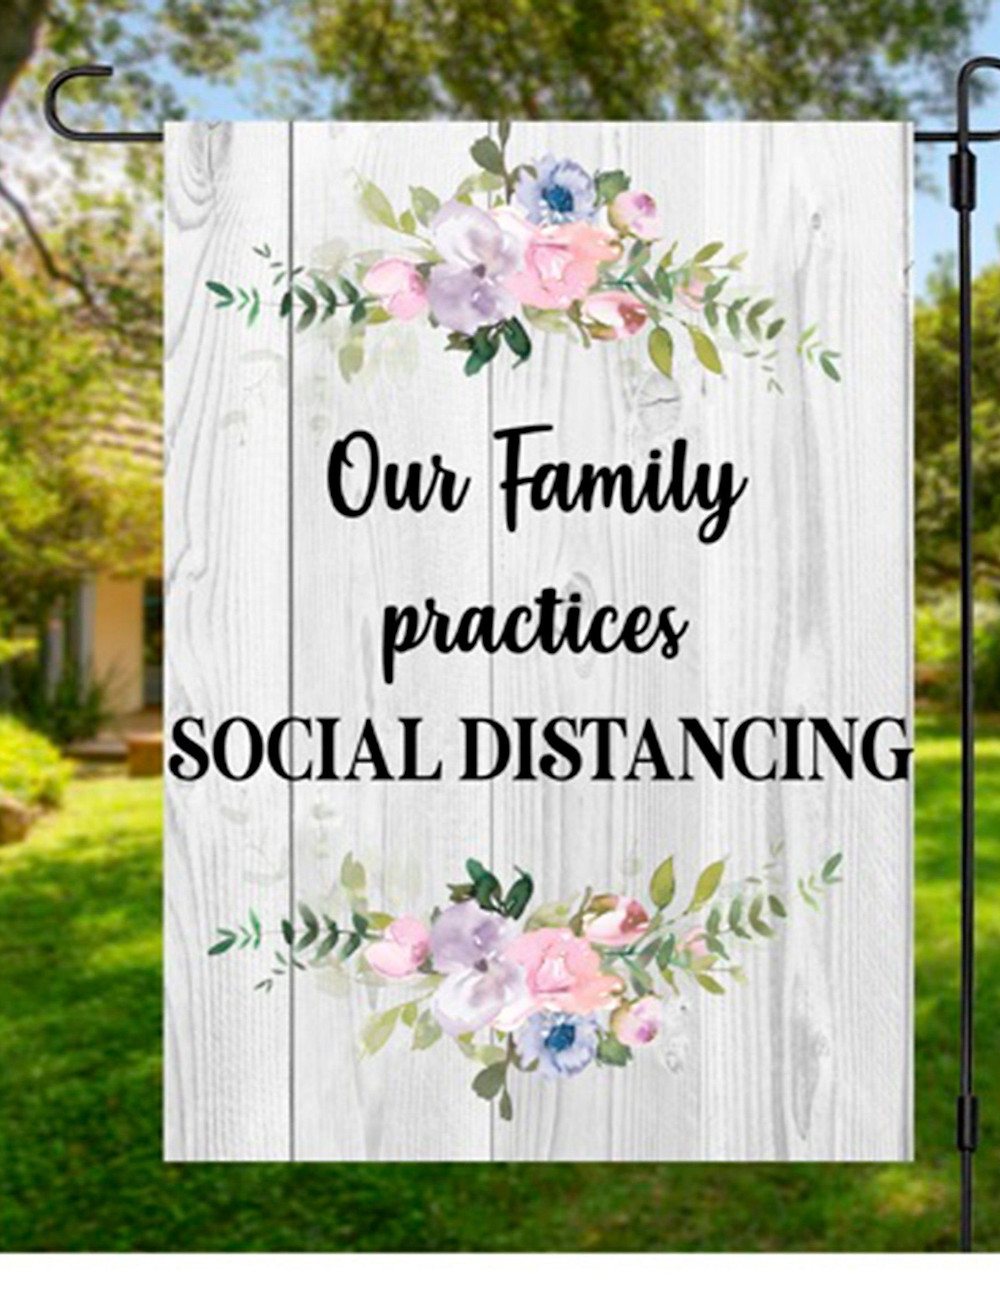 Social distance wedding planning ideas sign